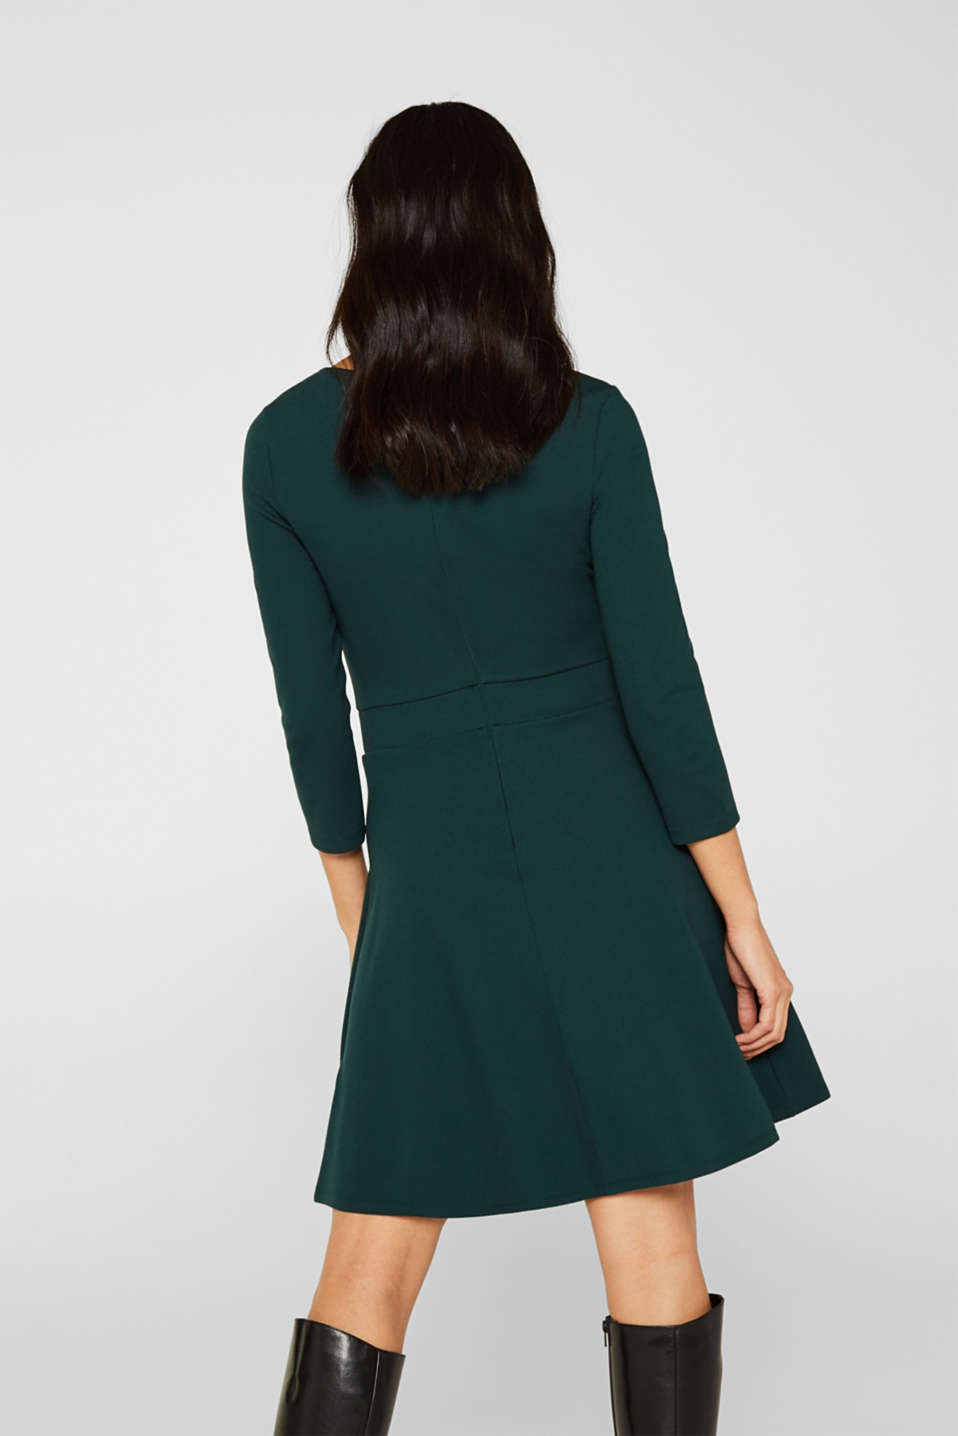 Flared dress made of stretch jersey, DARK TEAL GREEN, detail image number 2